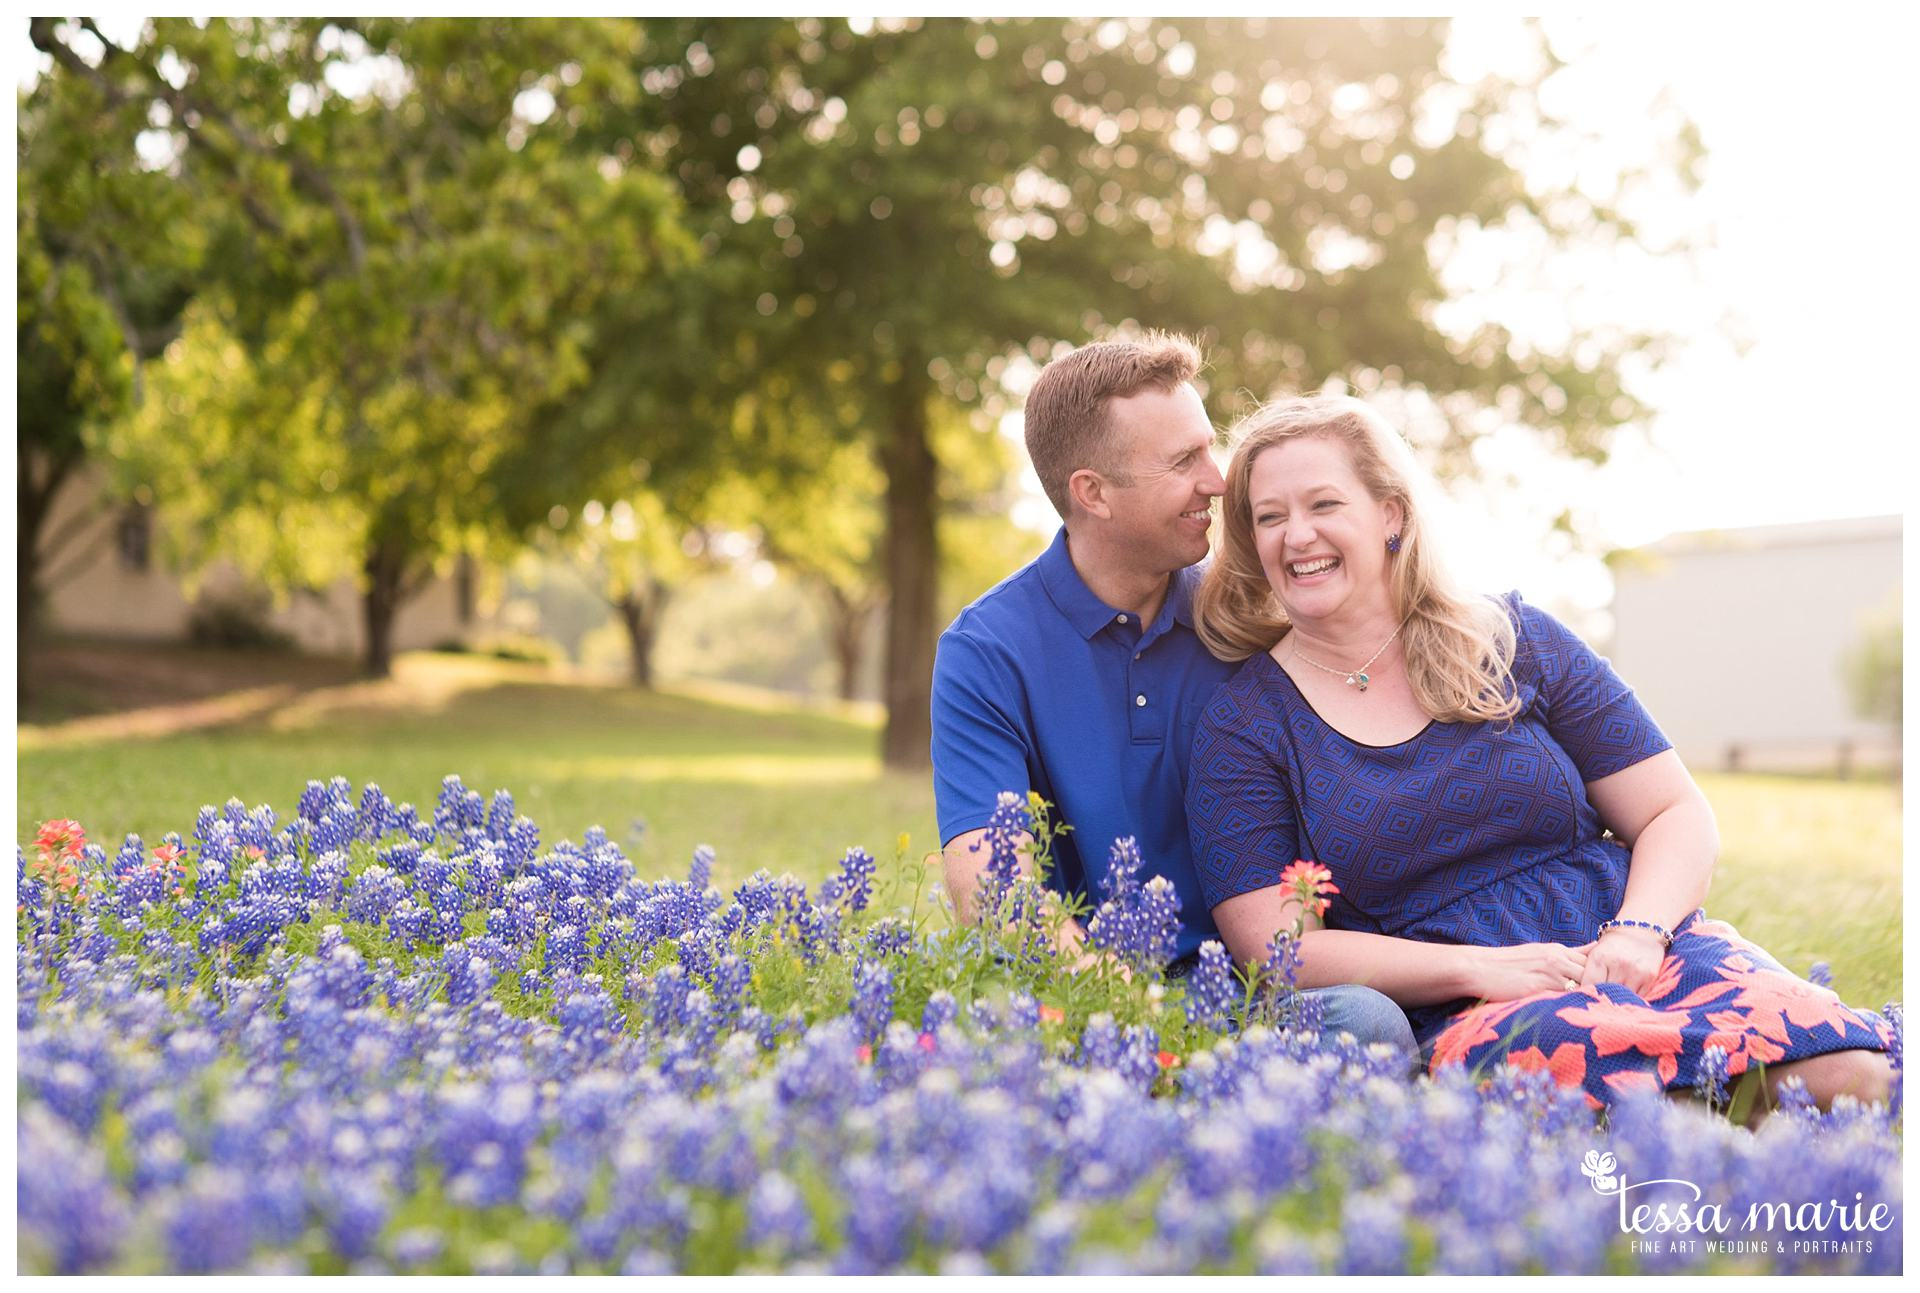 tessa_marie_weddings_legacy_story_focused_wedding_pictures_atlanta_wedding_photographer_family_pictures_portrait_Fine_art_memories_mothers_day_spring_moments_0237